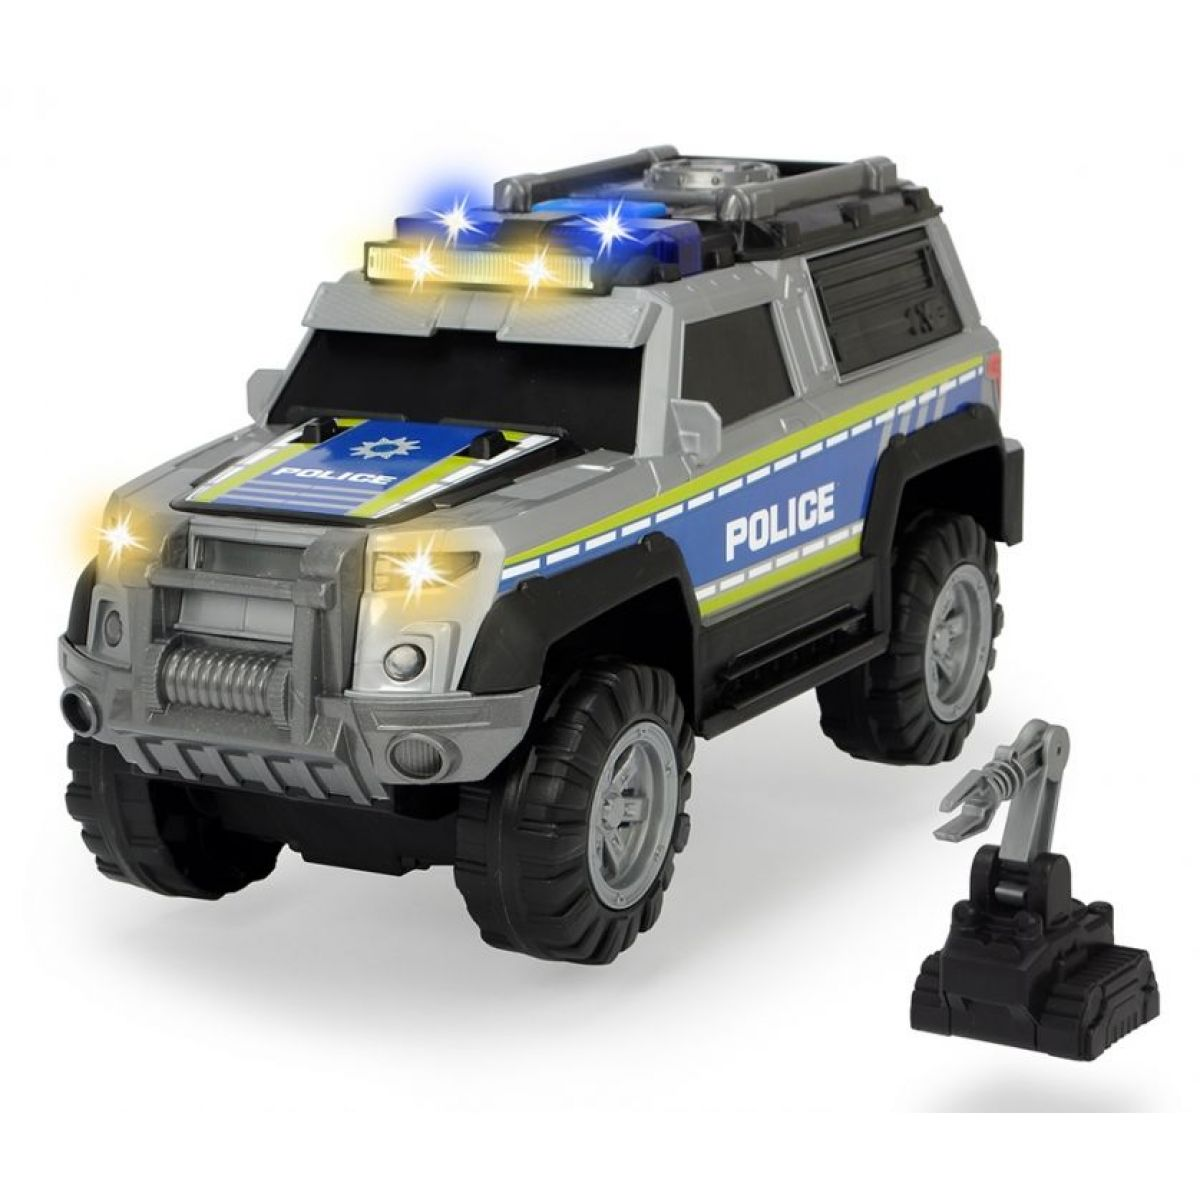 Dickie Action Series Policie Auto 30 cm